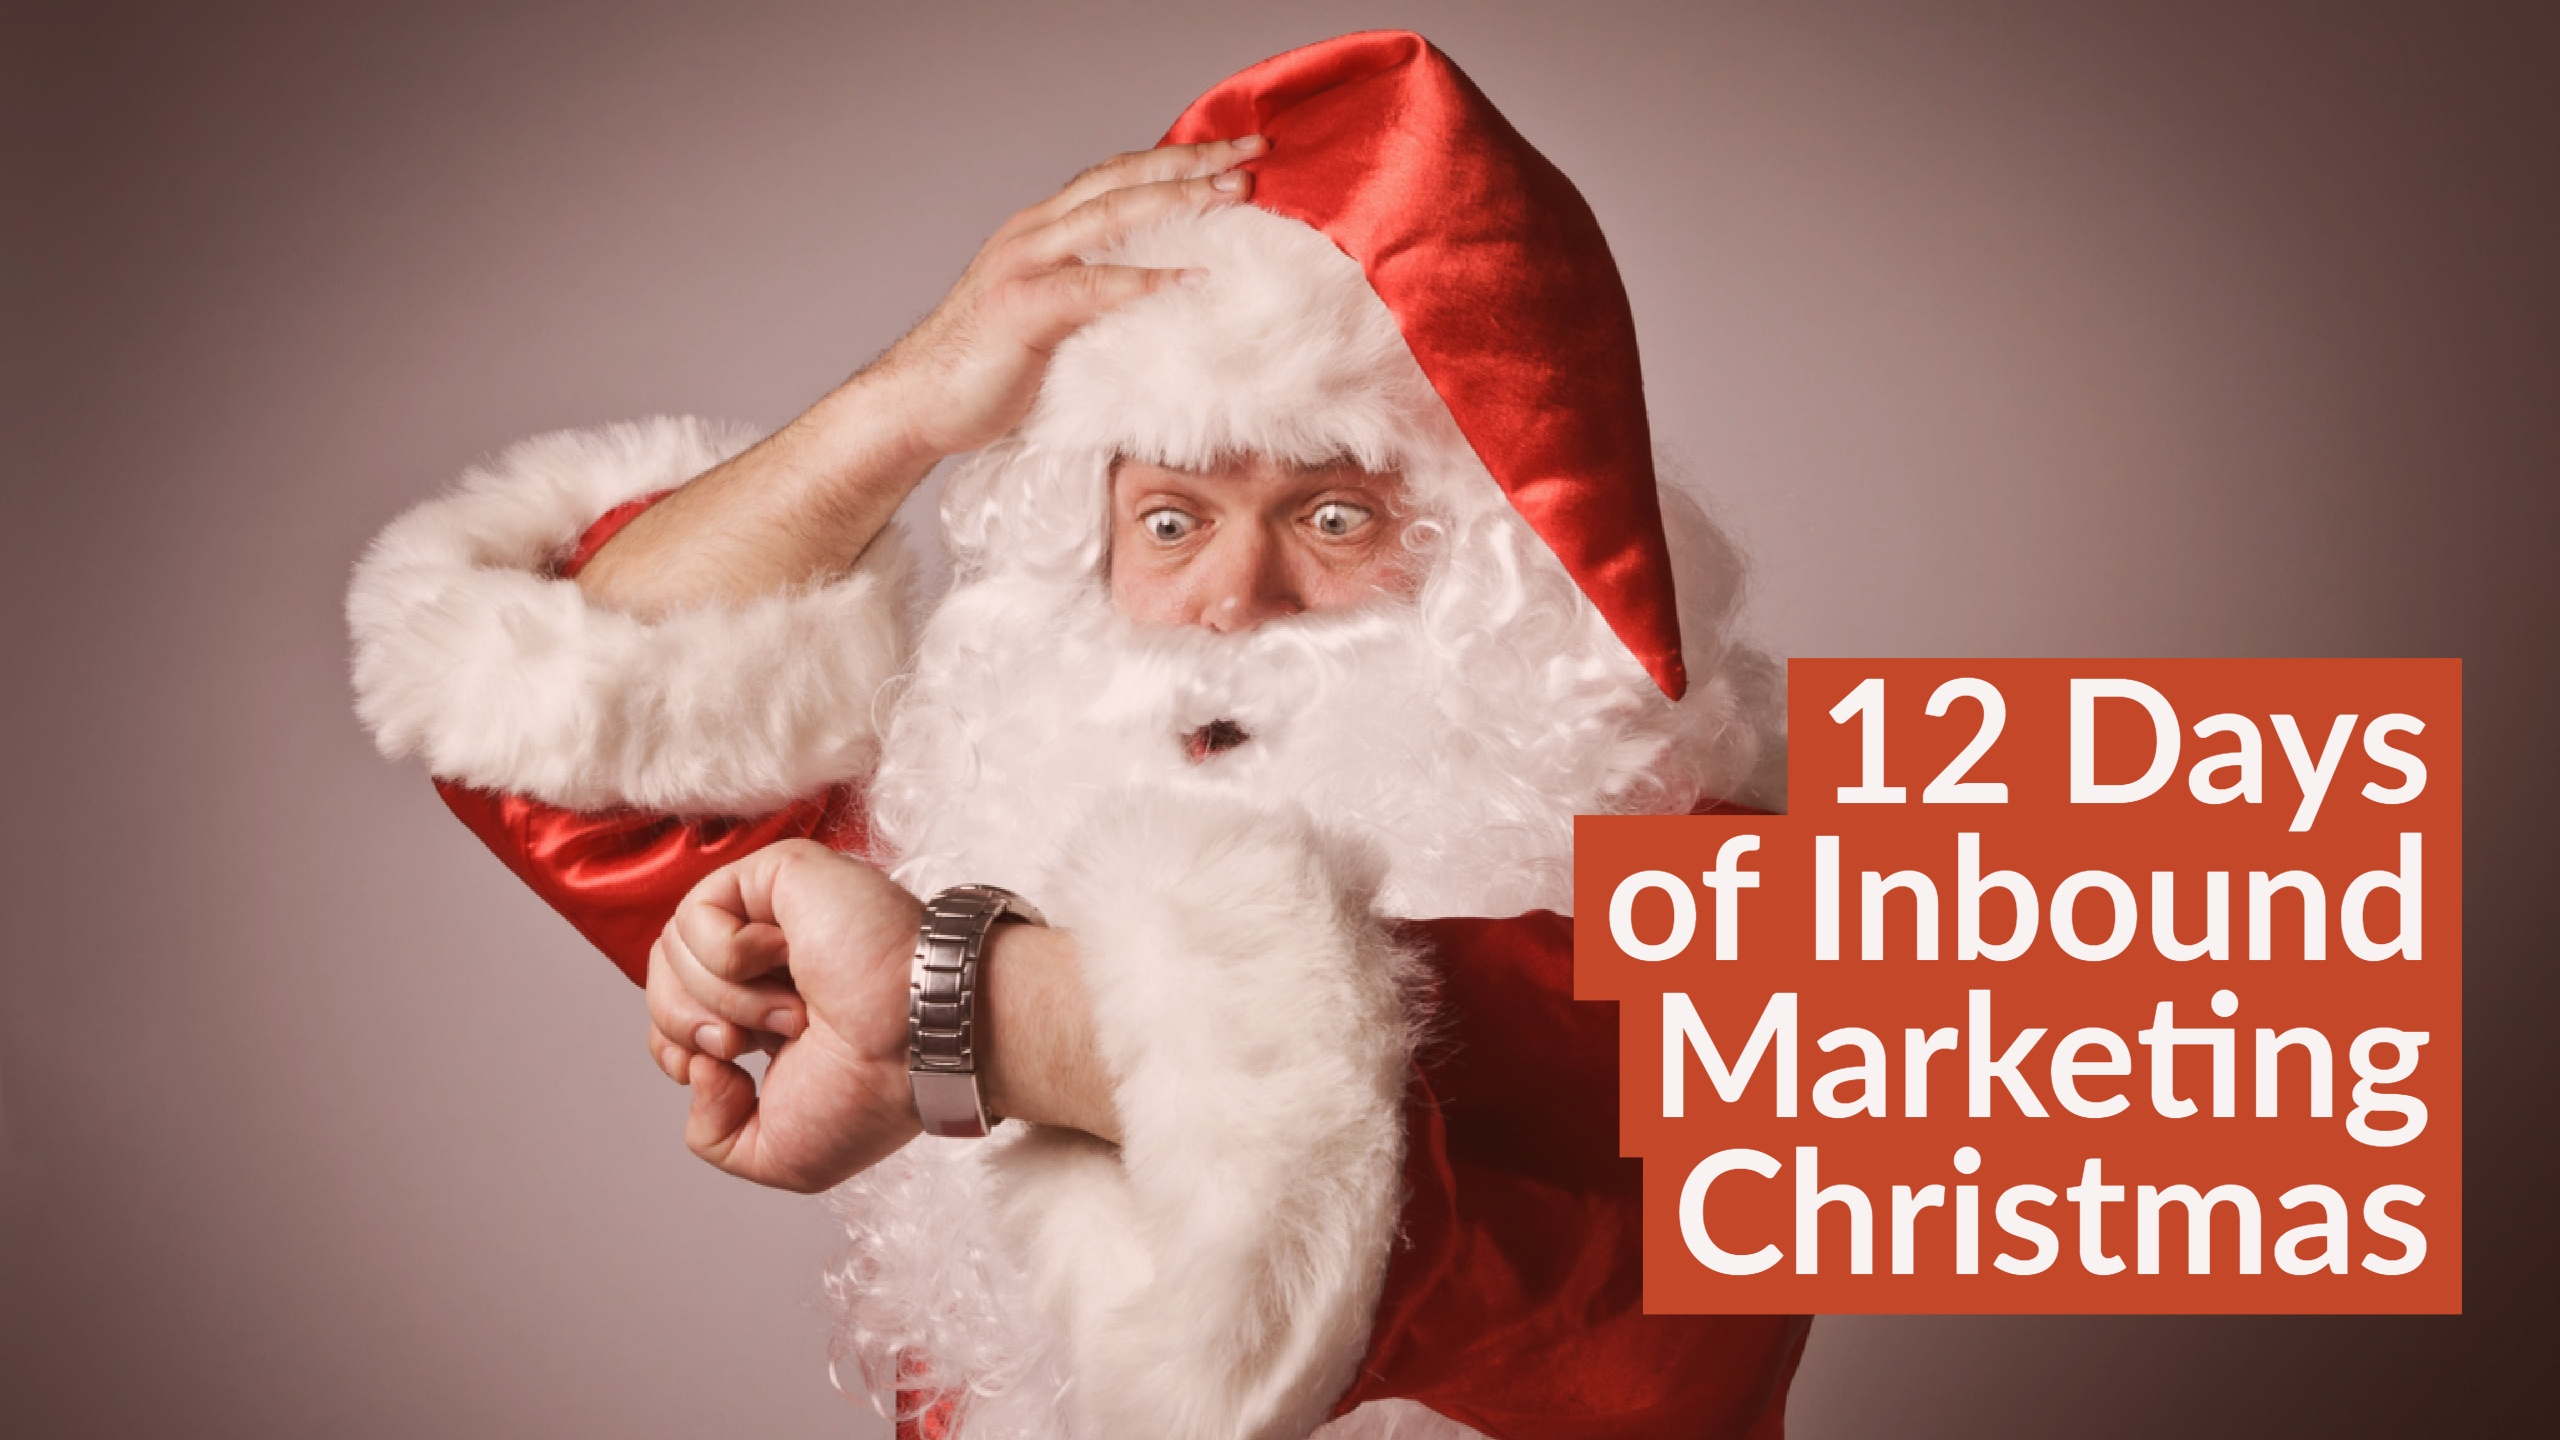 12 Days of an Inbound Marketing Christmas [Part 2]